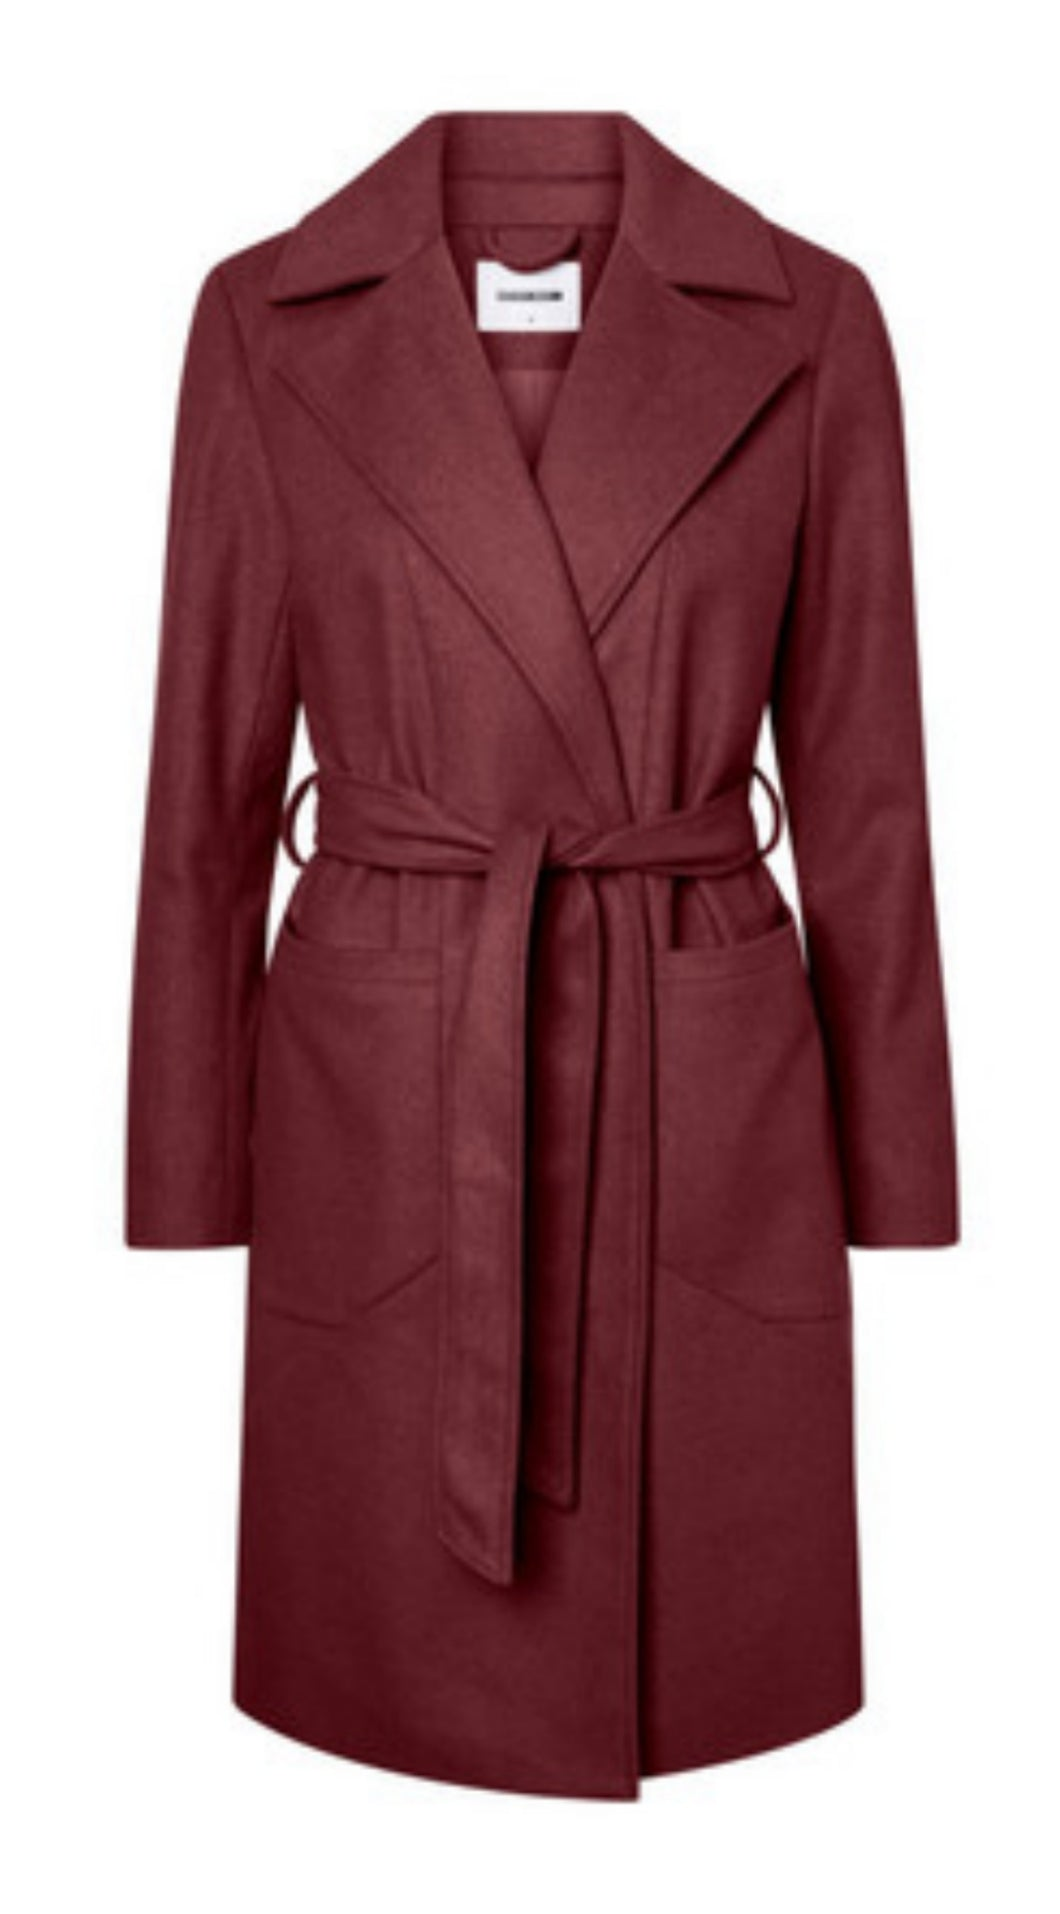 Dido Long Coat - Wine / XS - KAPPOR DAM, KAPPOR, L, M, NOISY